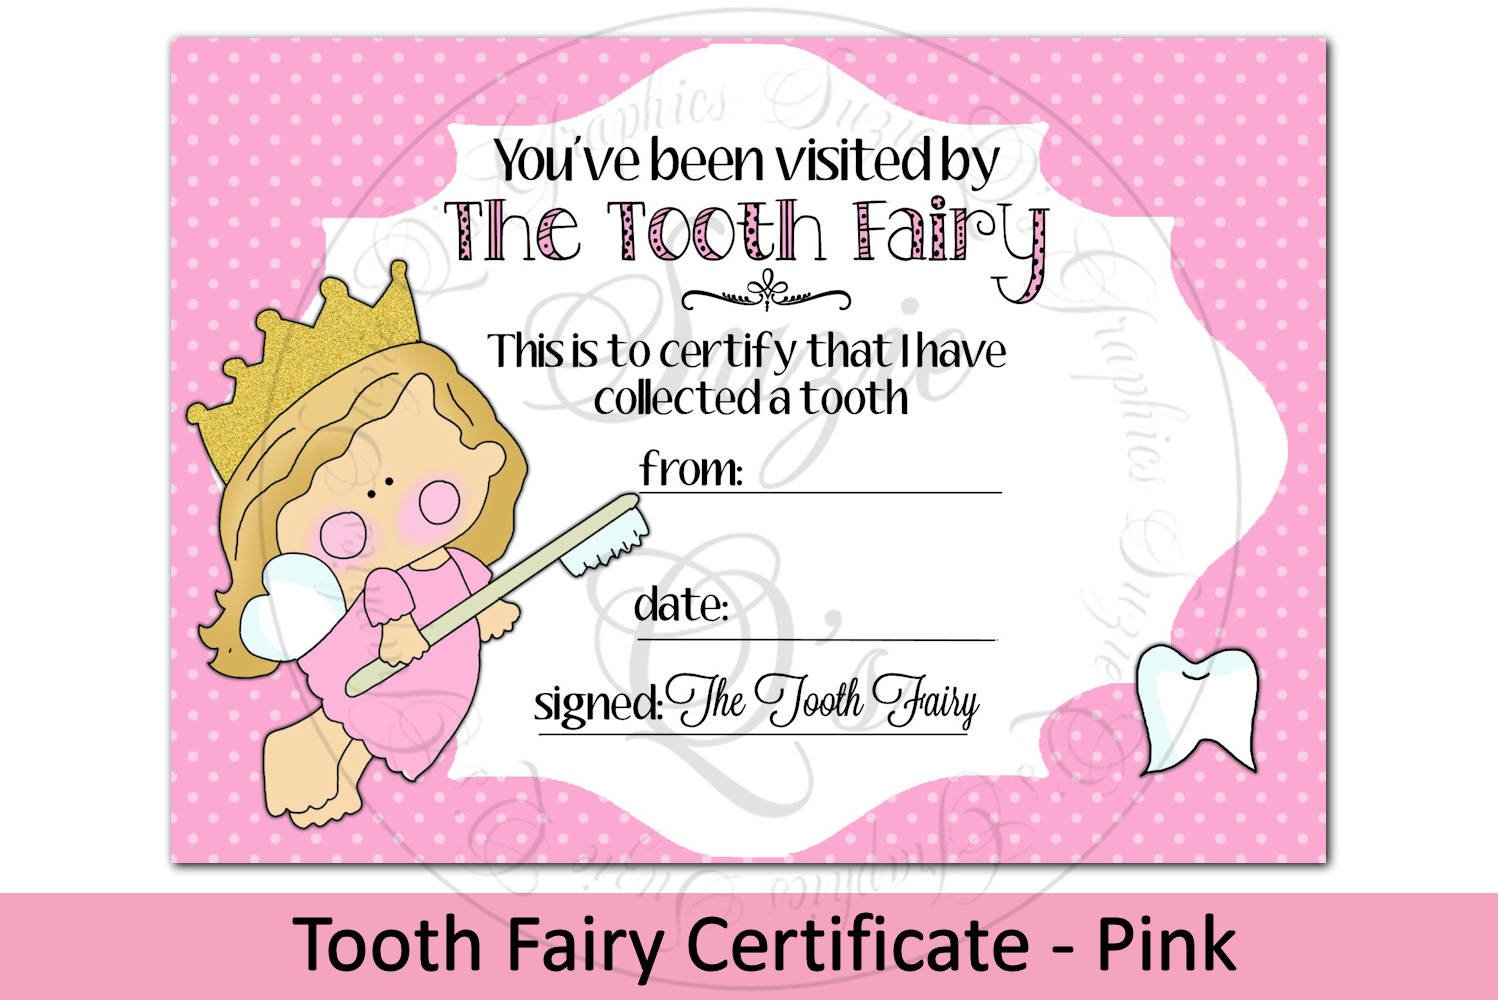 Tooth Fairy Certificate - Pink, 21 x 21 inches (321212168)  Other  Design Throughout Free Tooth Fairy Certificate Template